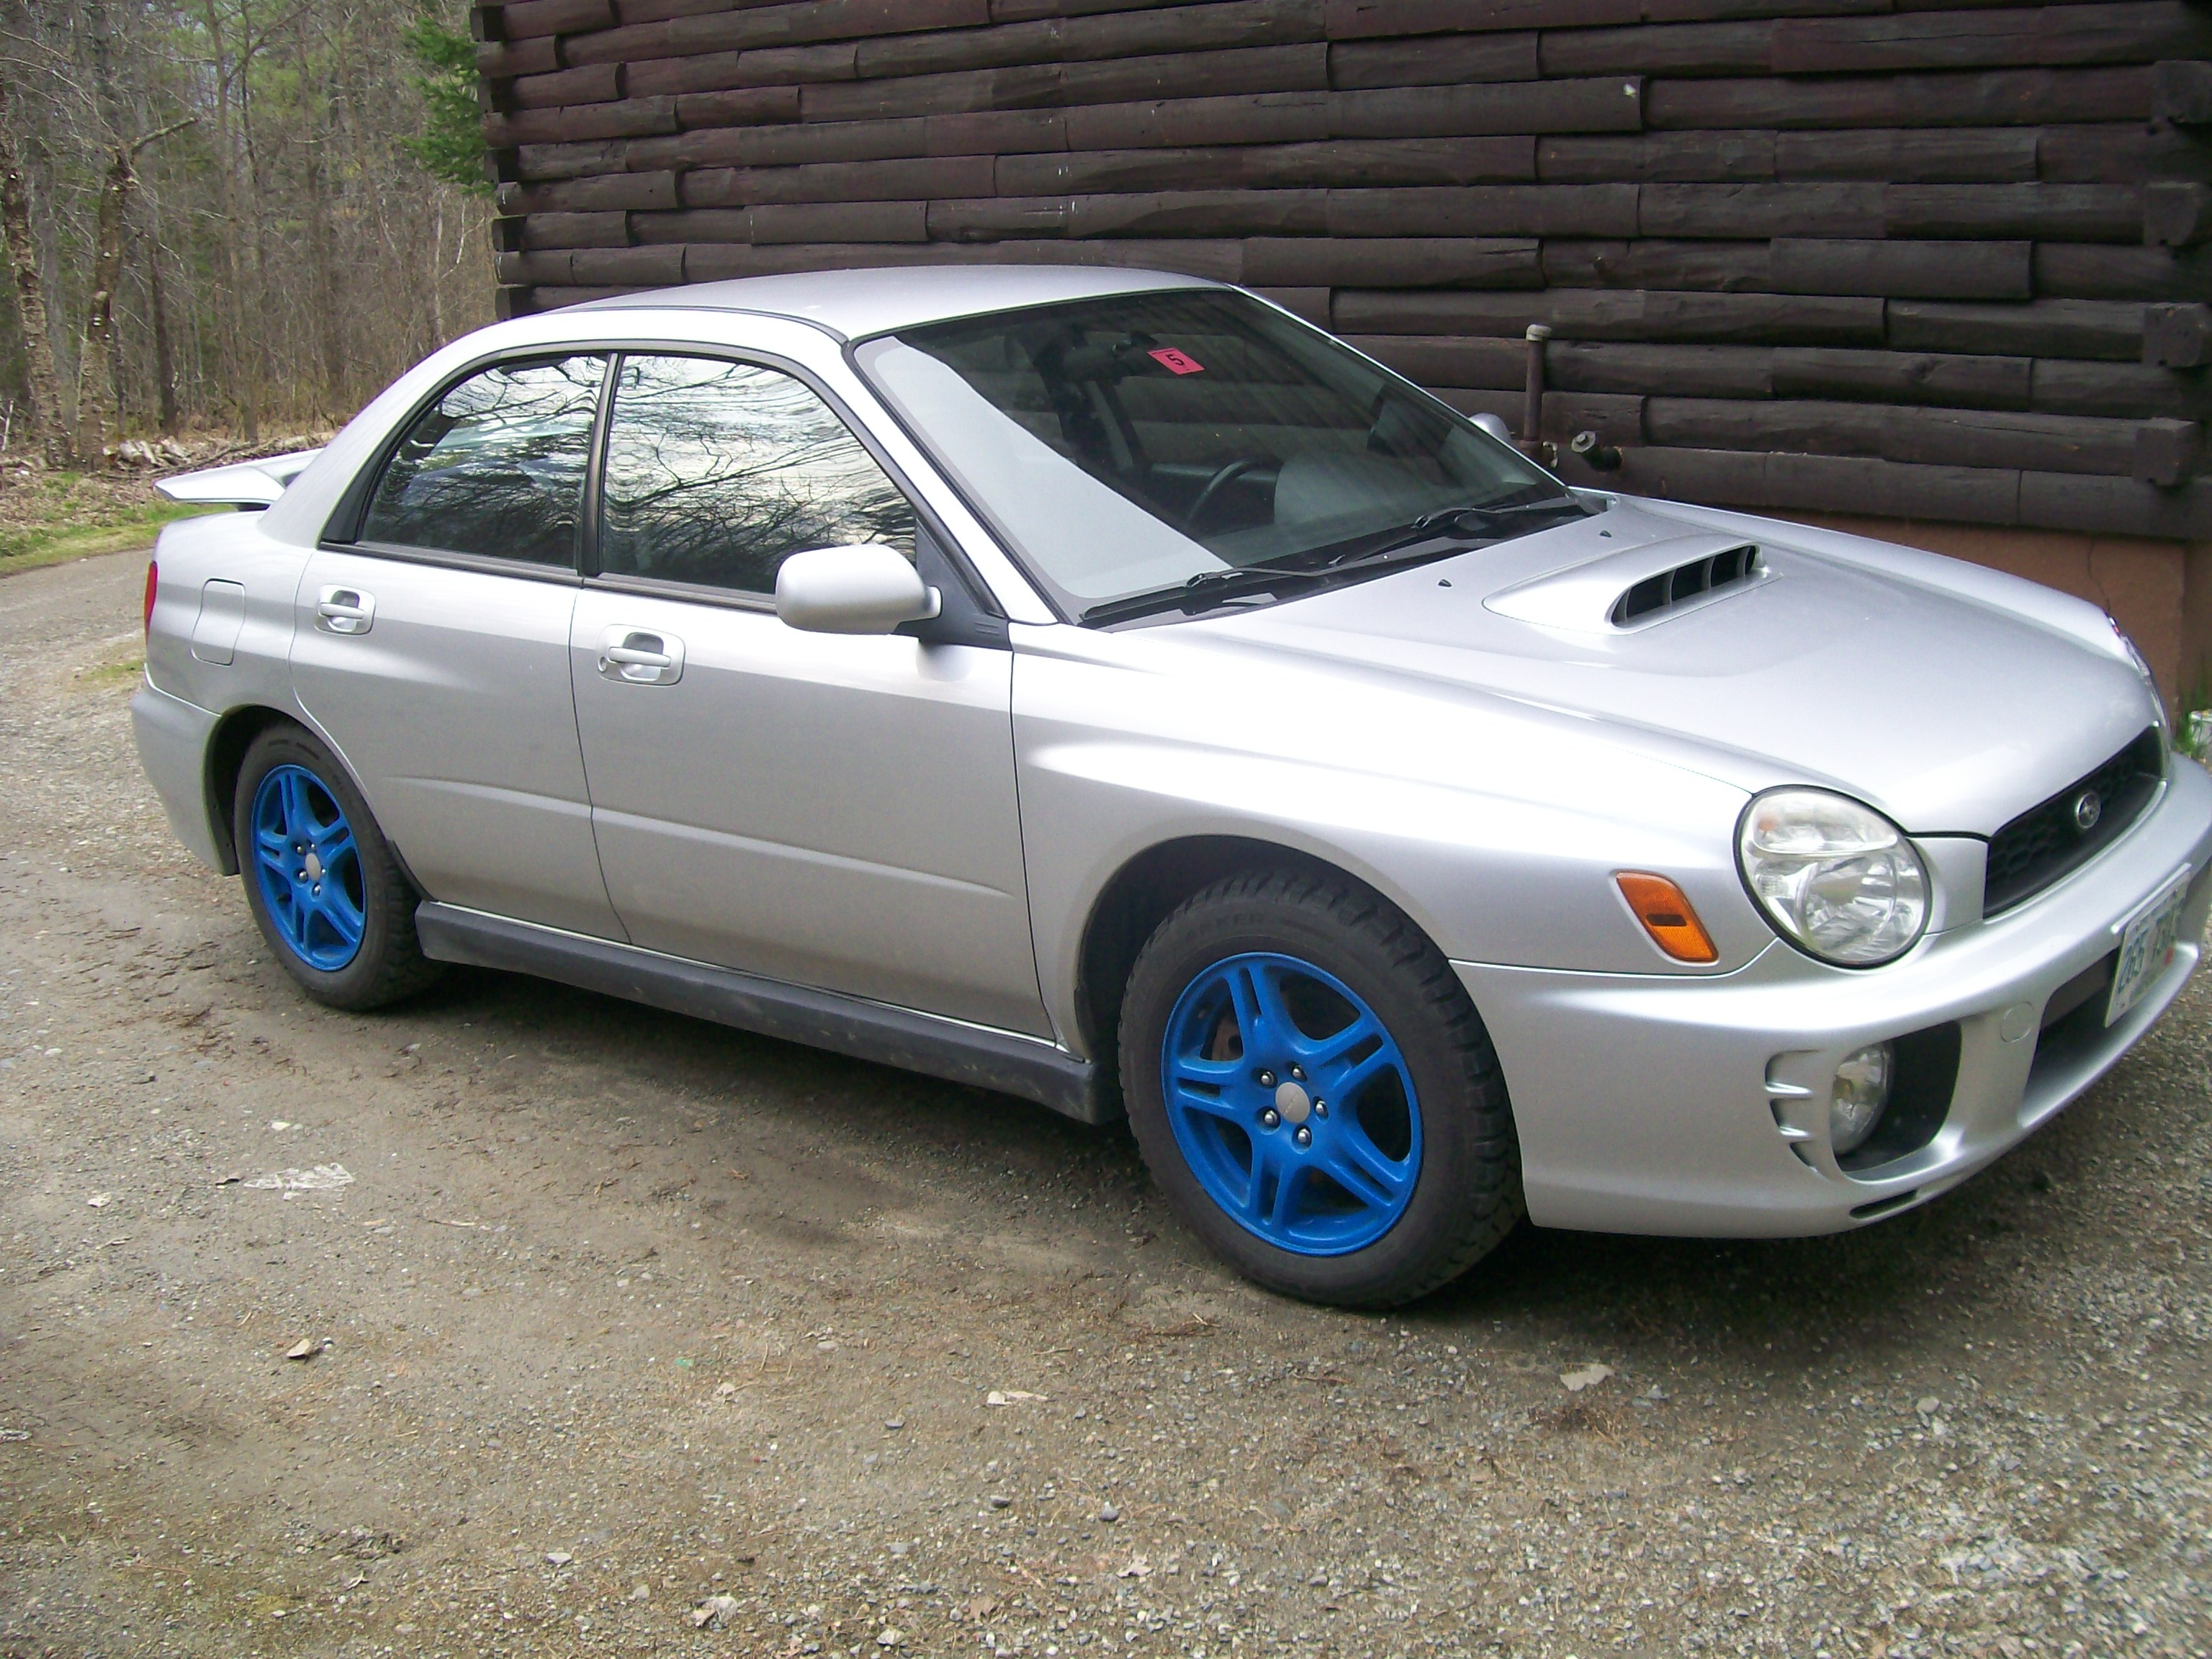 Another IrwinMobile 2003 Subaru Impreza post... - 15054035